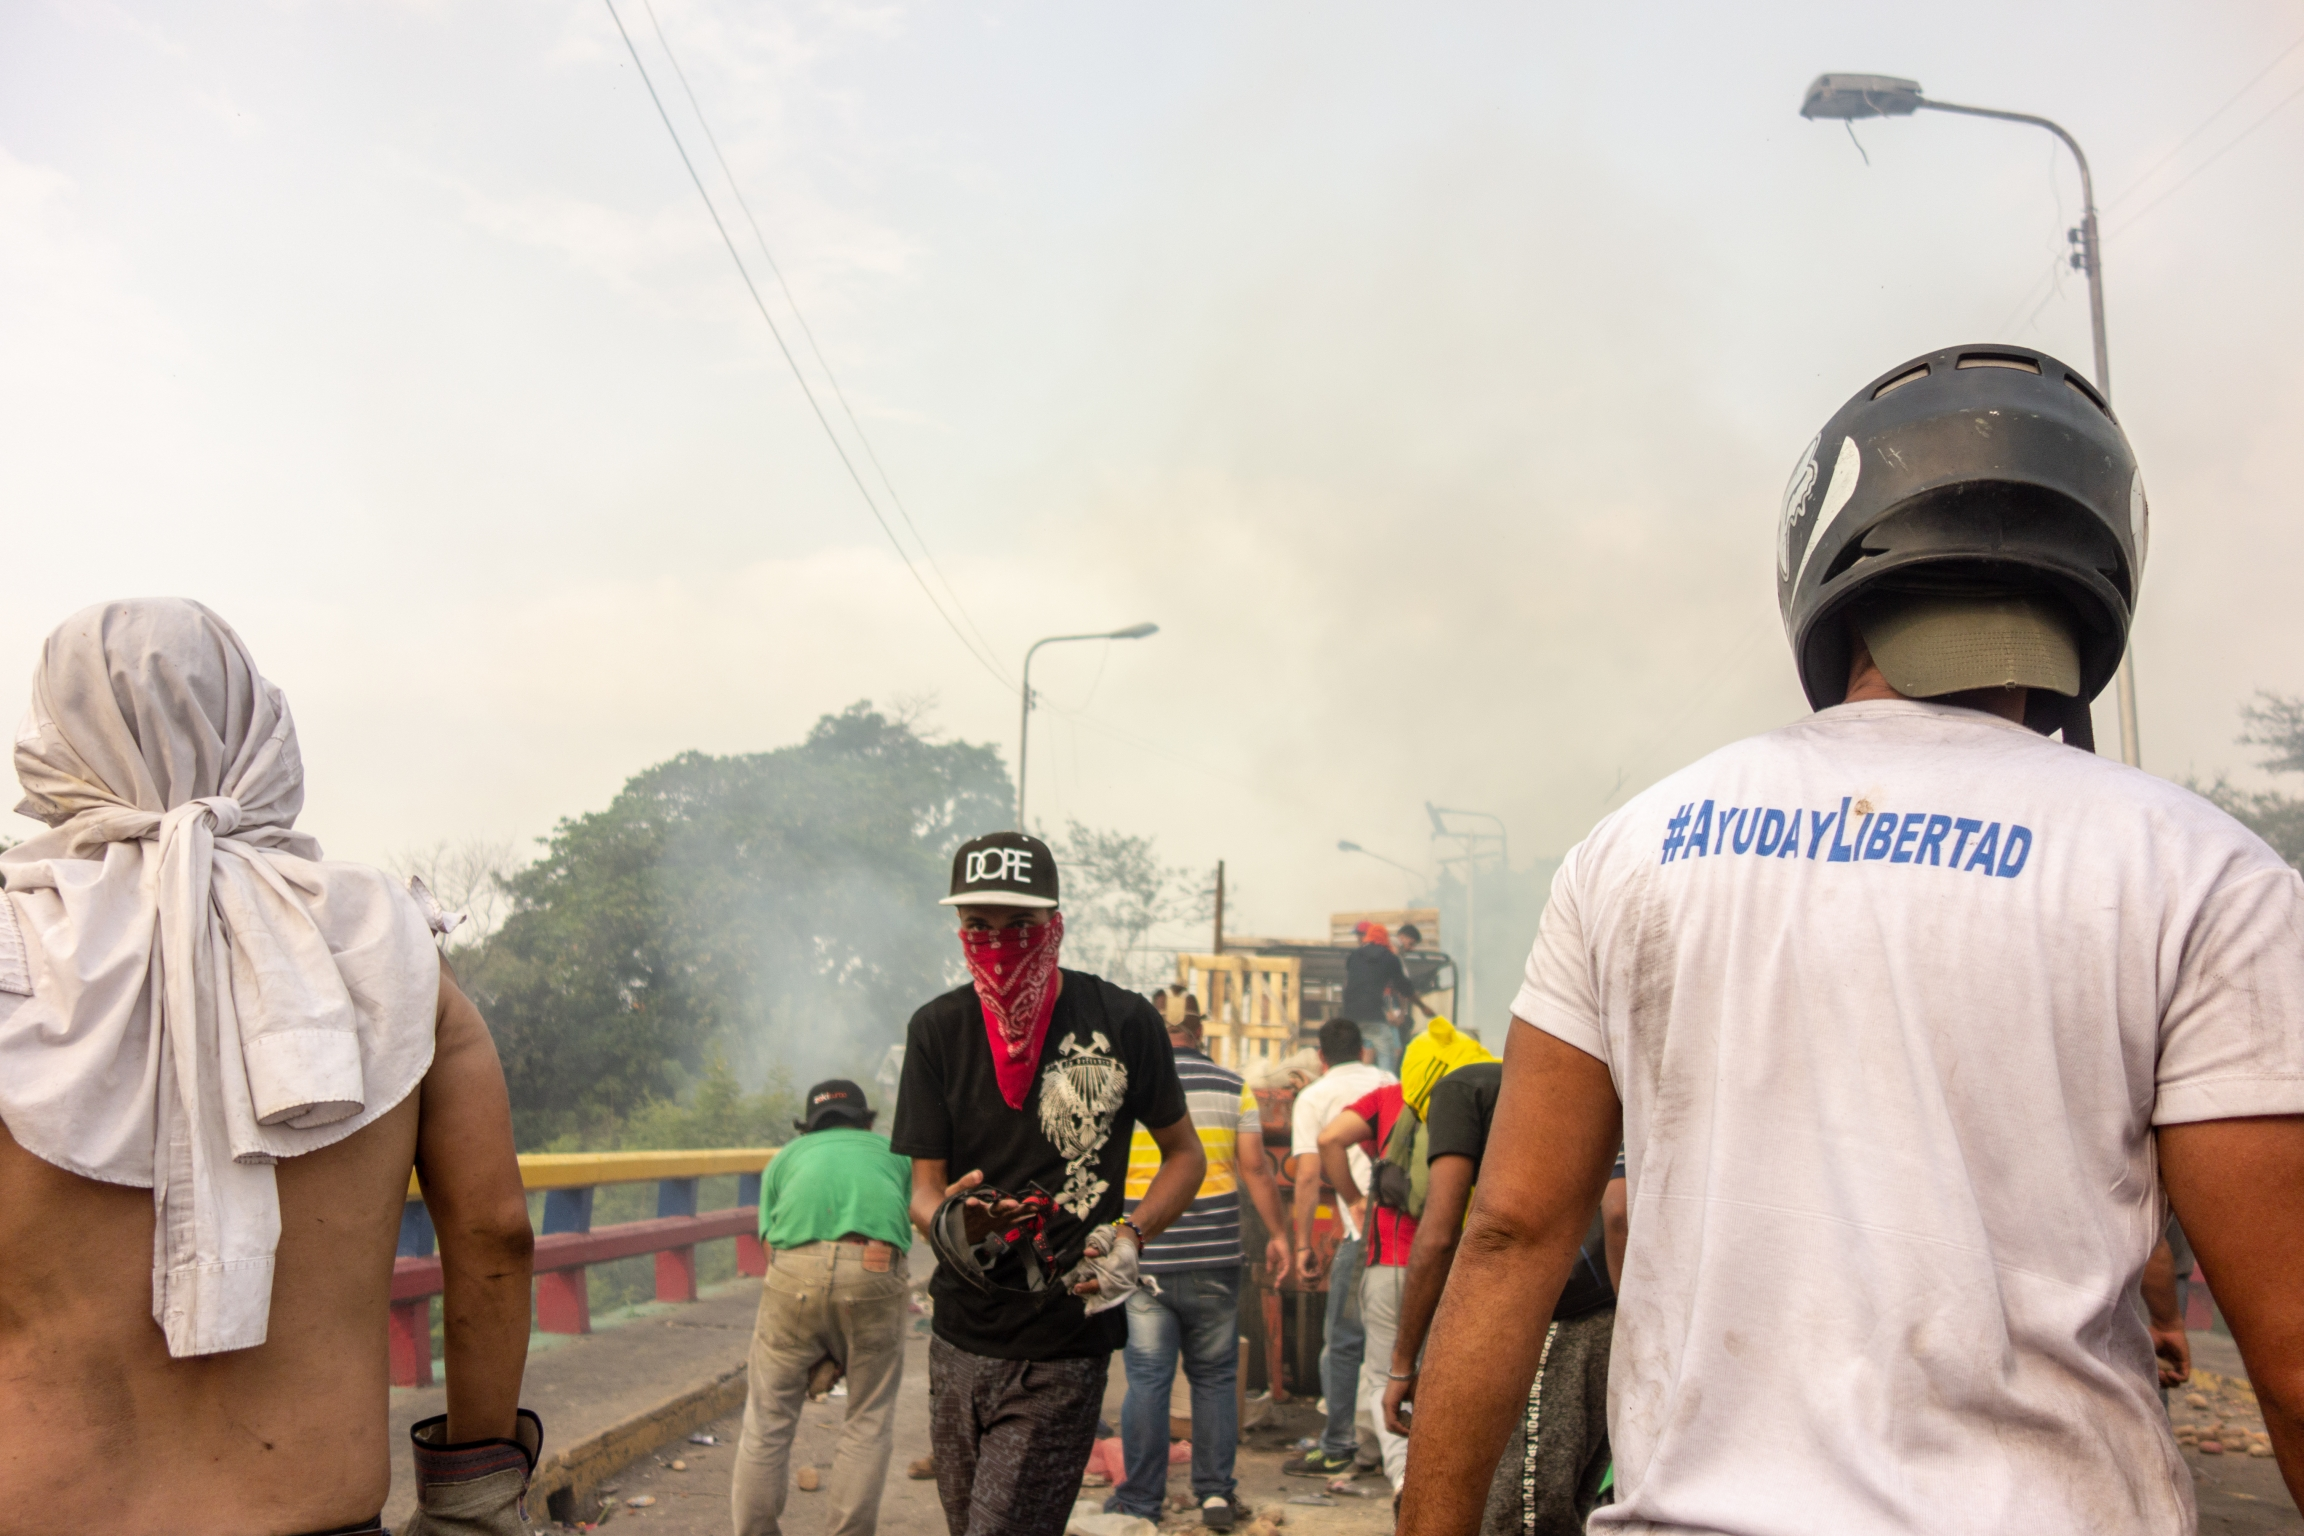 protest at venezuelan border